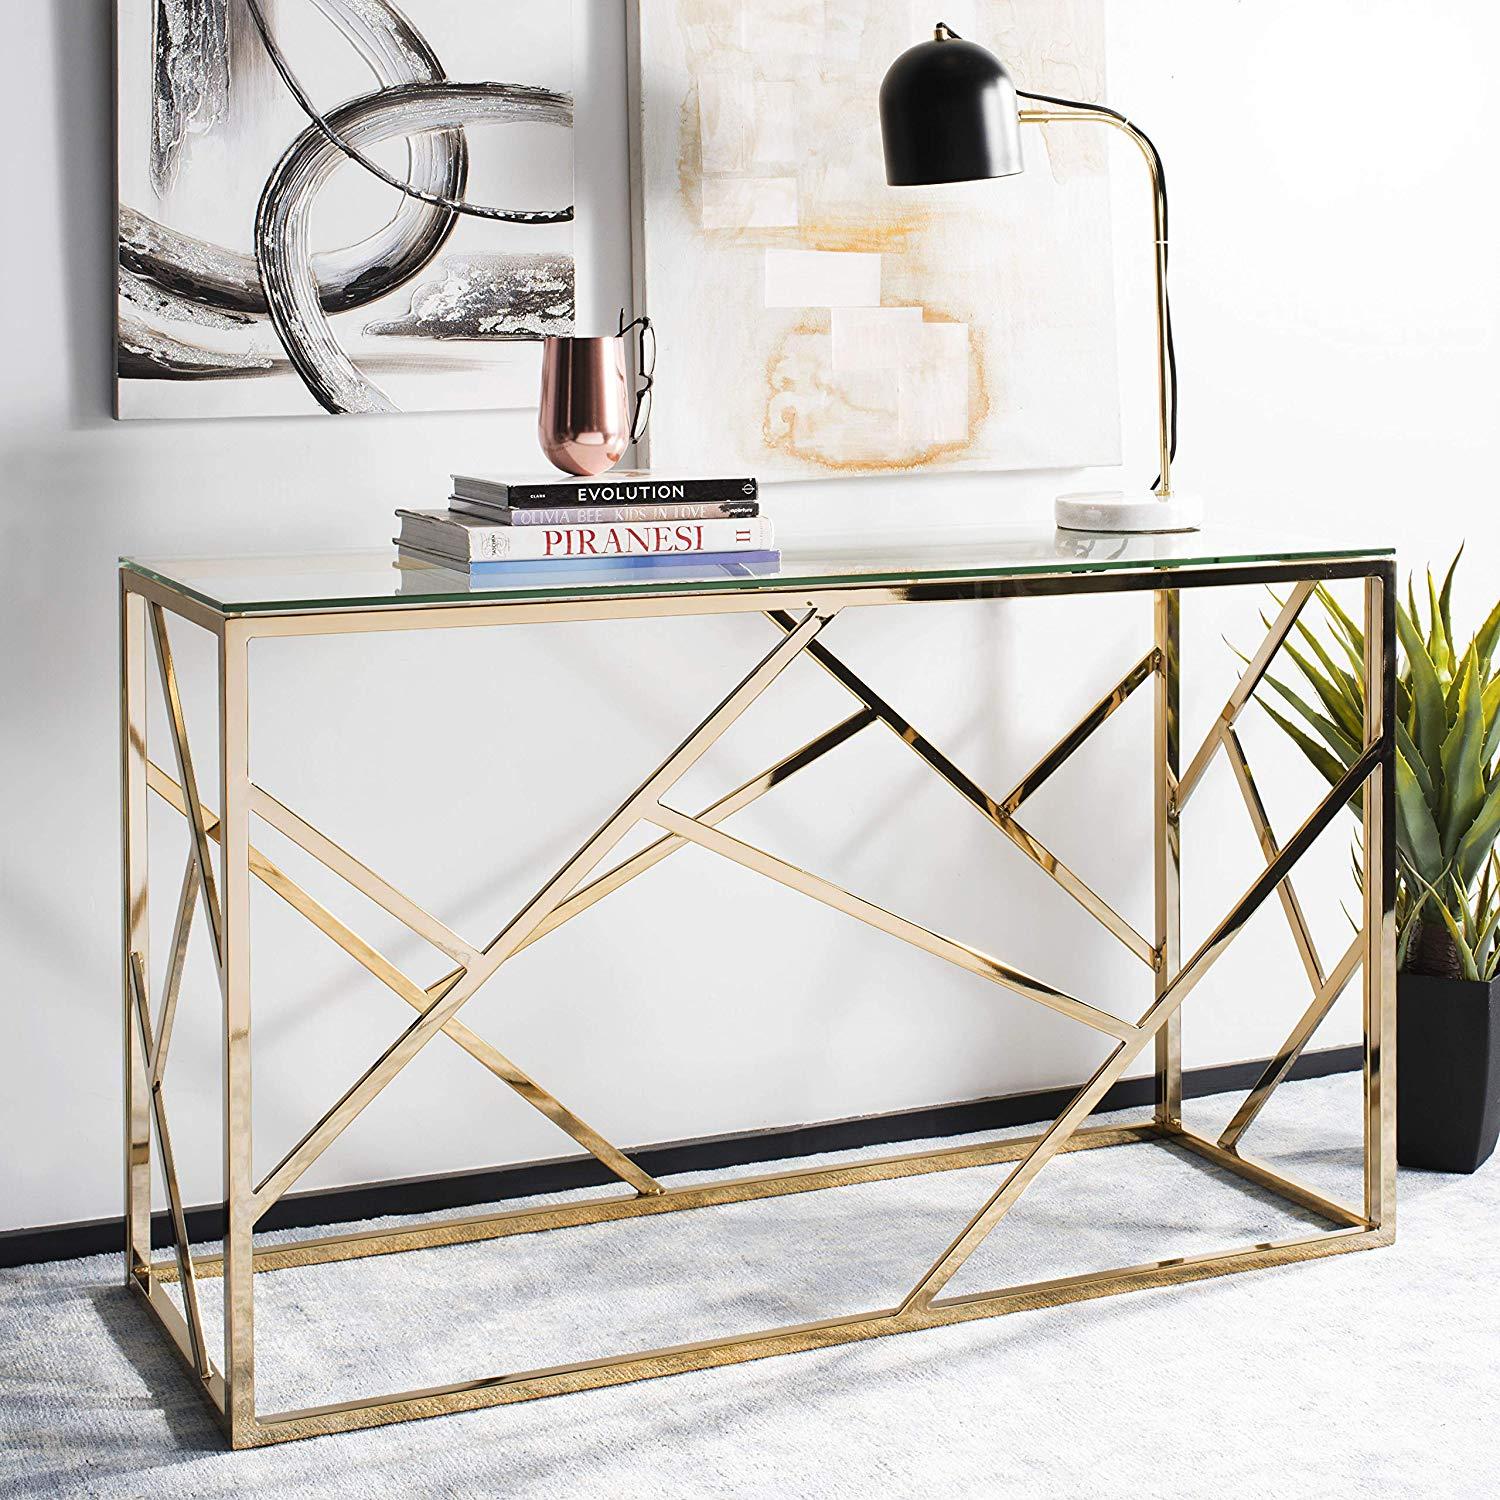 beautiful-brass-console-table-with-crisscross-base-and-glass-top